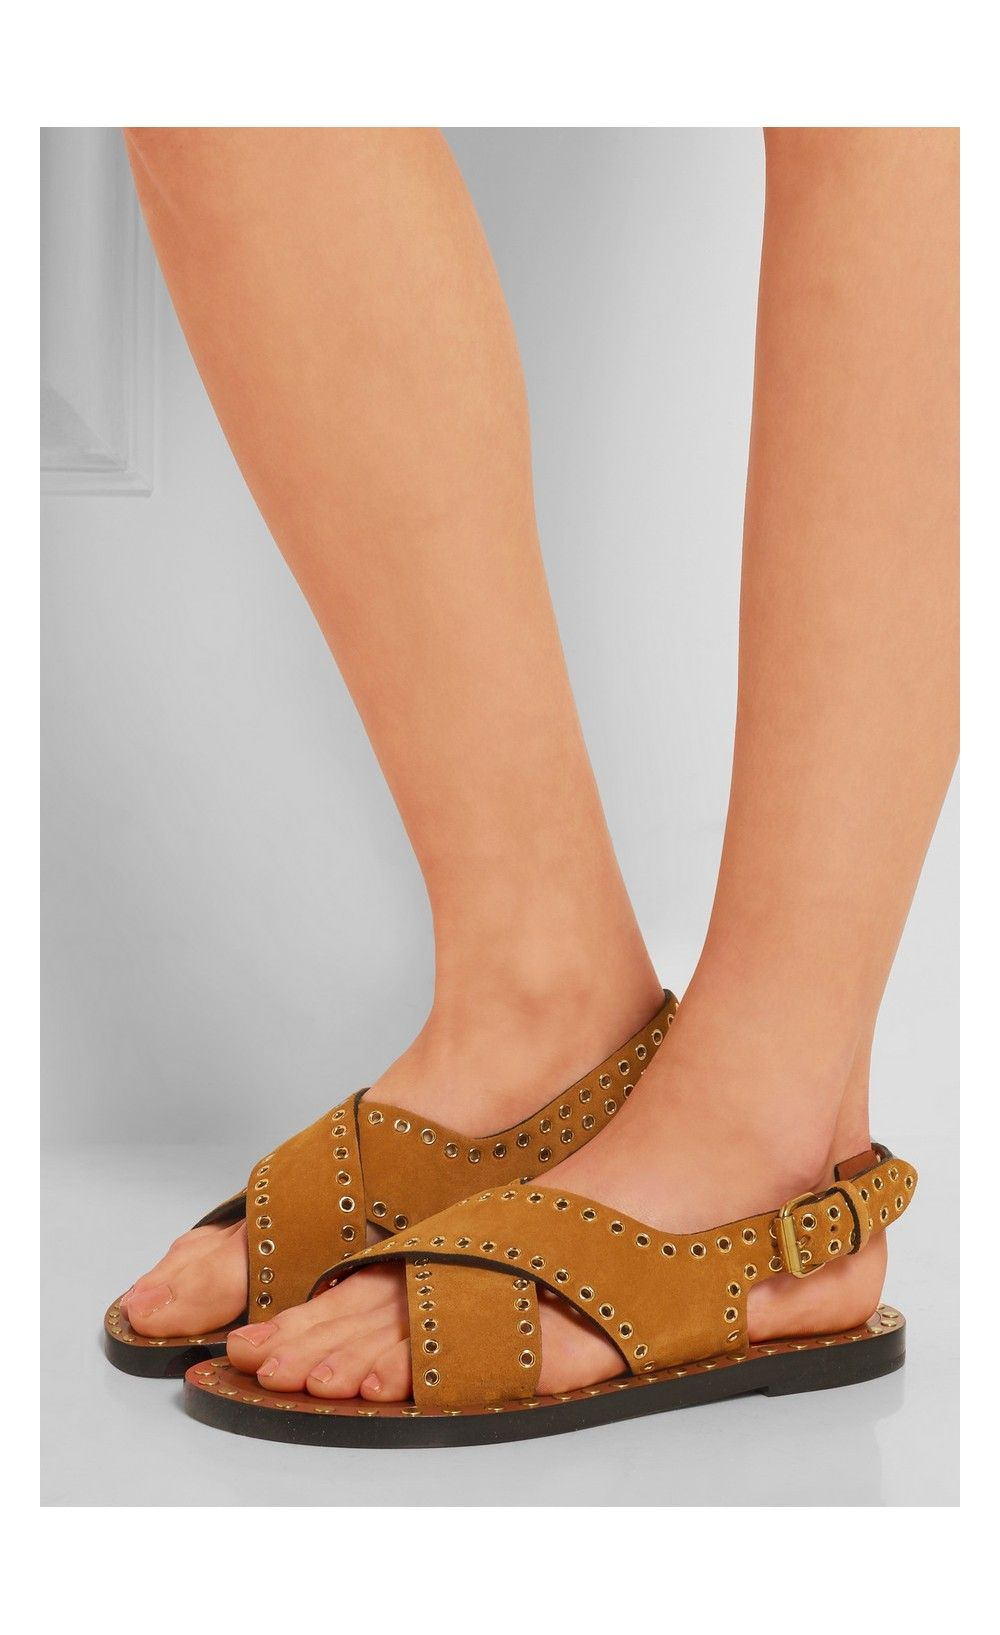 Isabel Marant Jane Studded Suede Sandals Sale jZvnx